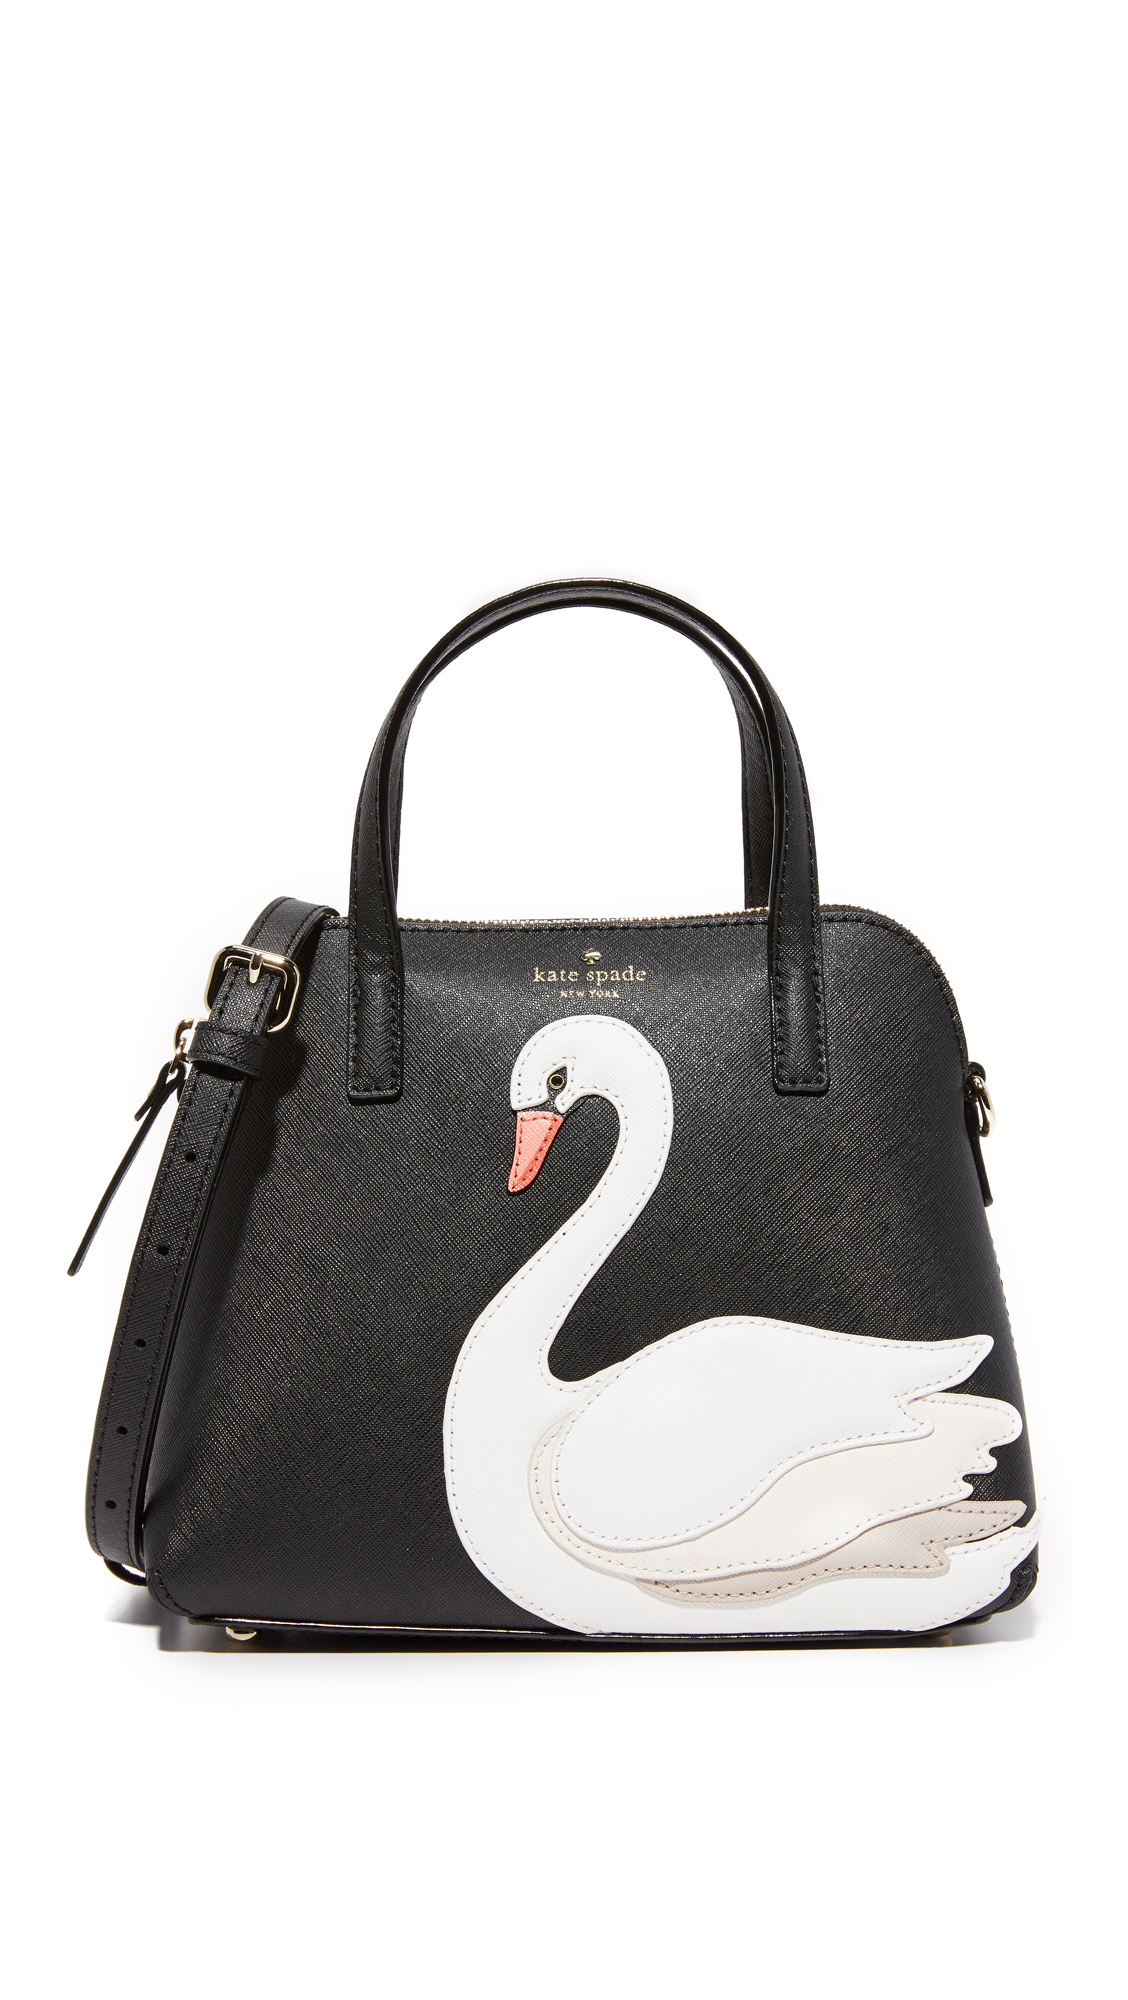 Kate Spade Leather Small Maise Shoulder Bag Lyst